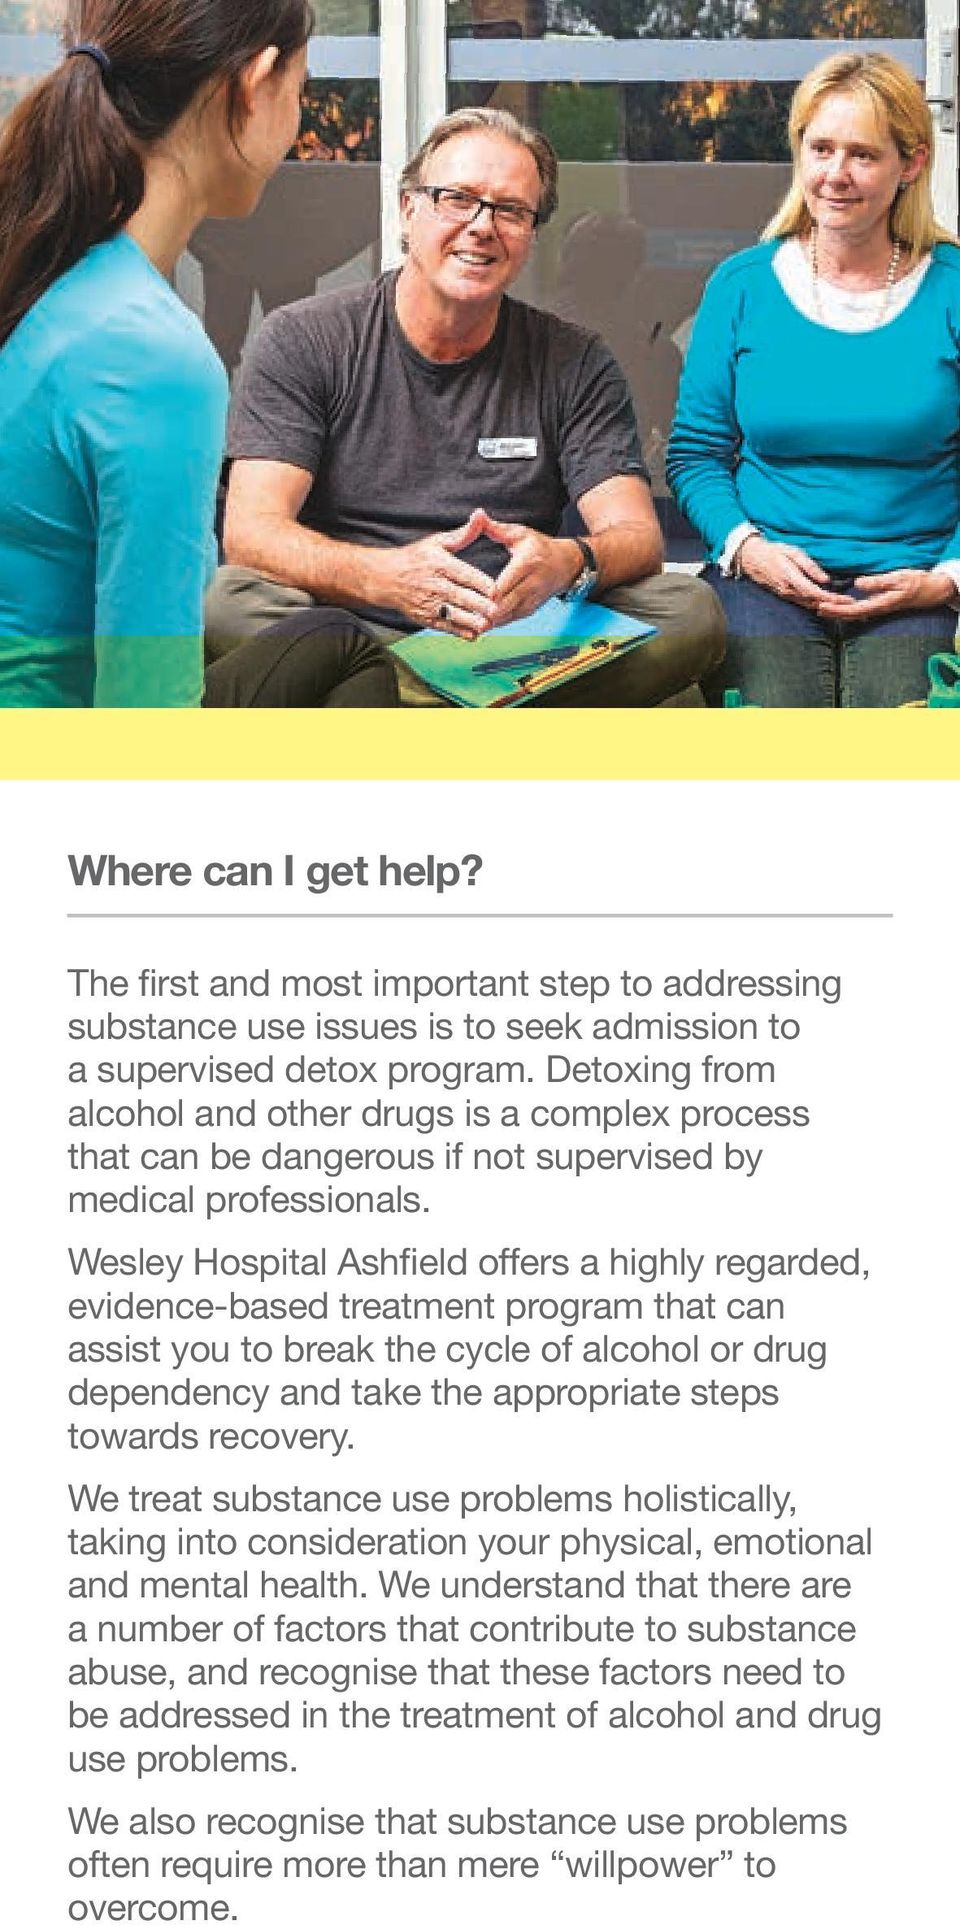 Wesley Hospital Ashfield offers a highly regarded, evidence-based treatment program that can assist you to break the cycle of alcohol or drug dependency and take the appropriate steps towards